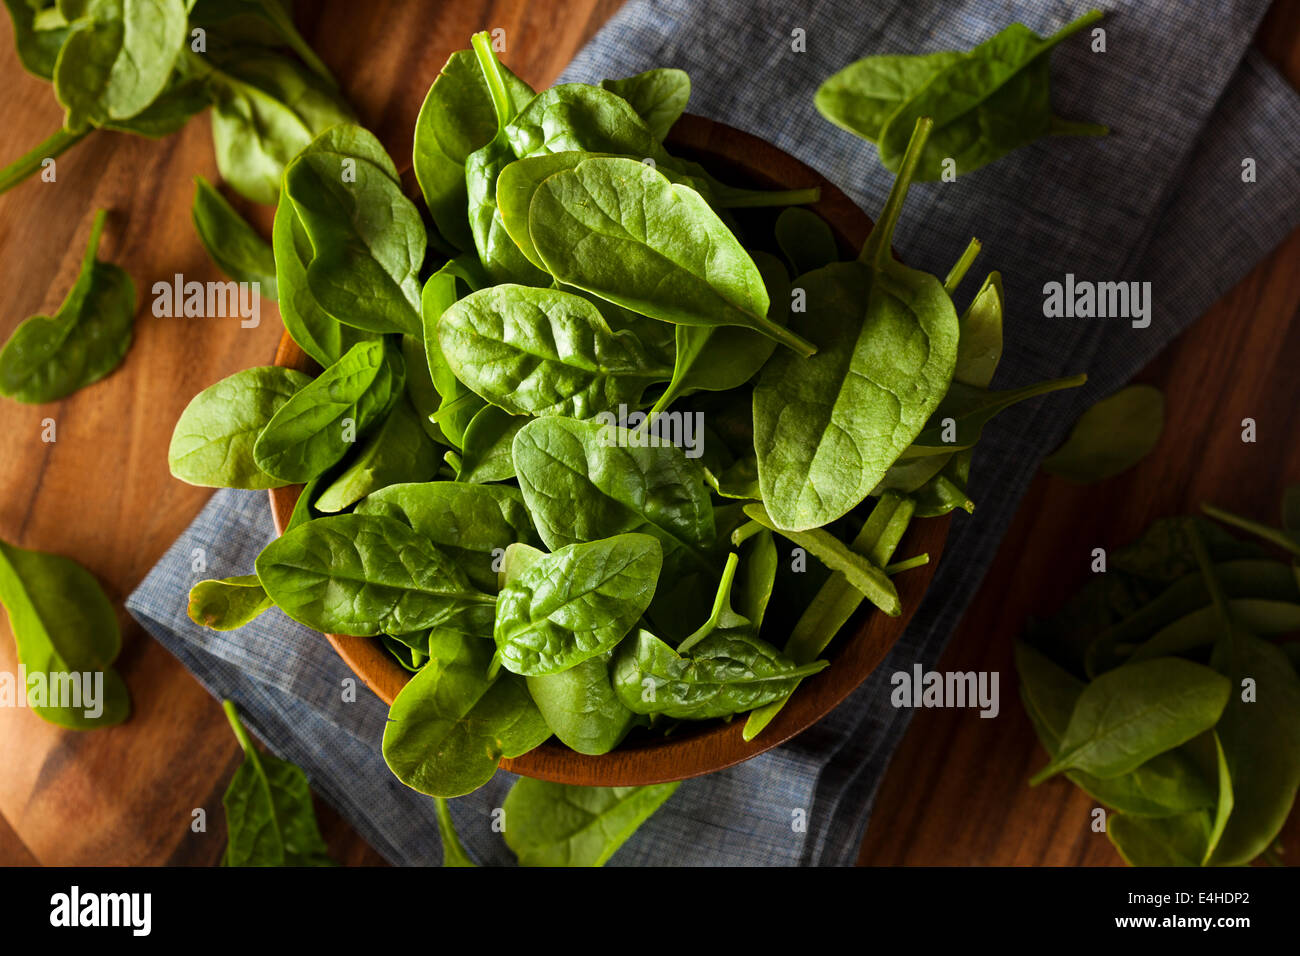 Raw Green Organic Baby Spinach in a Bowl Stock Photo